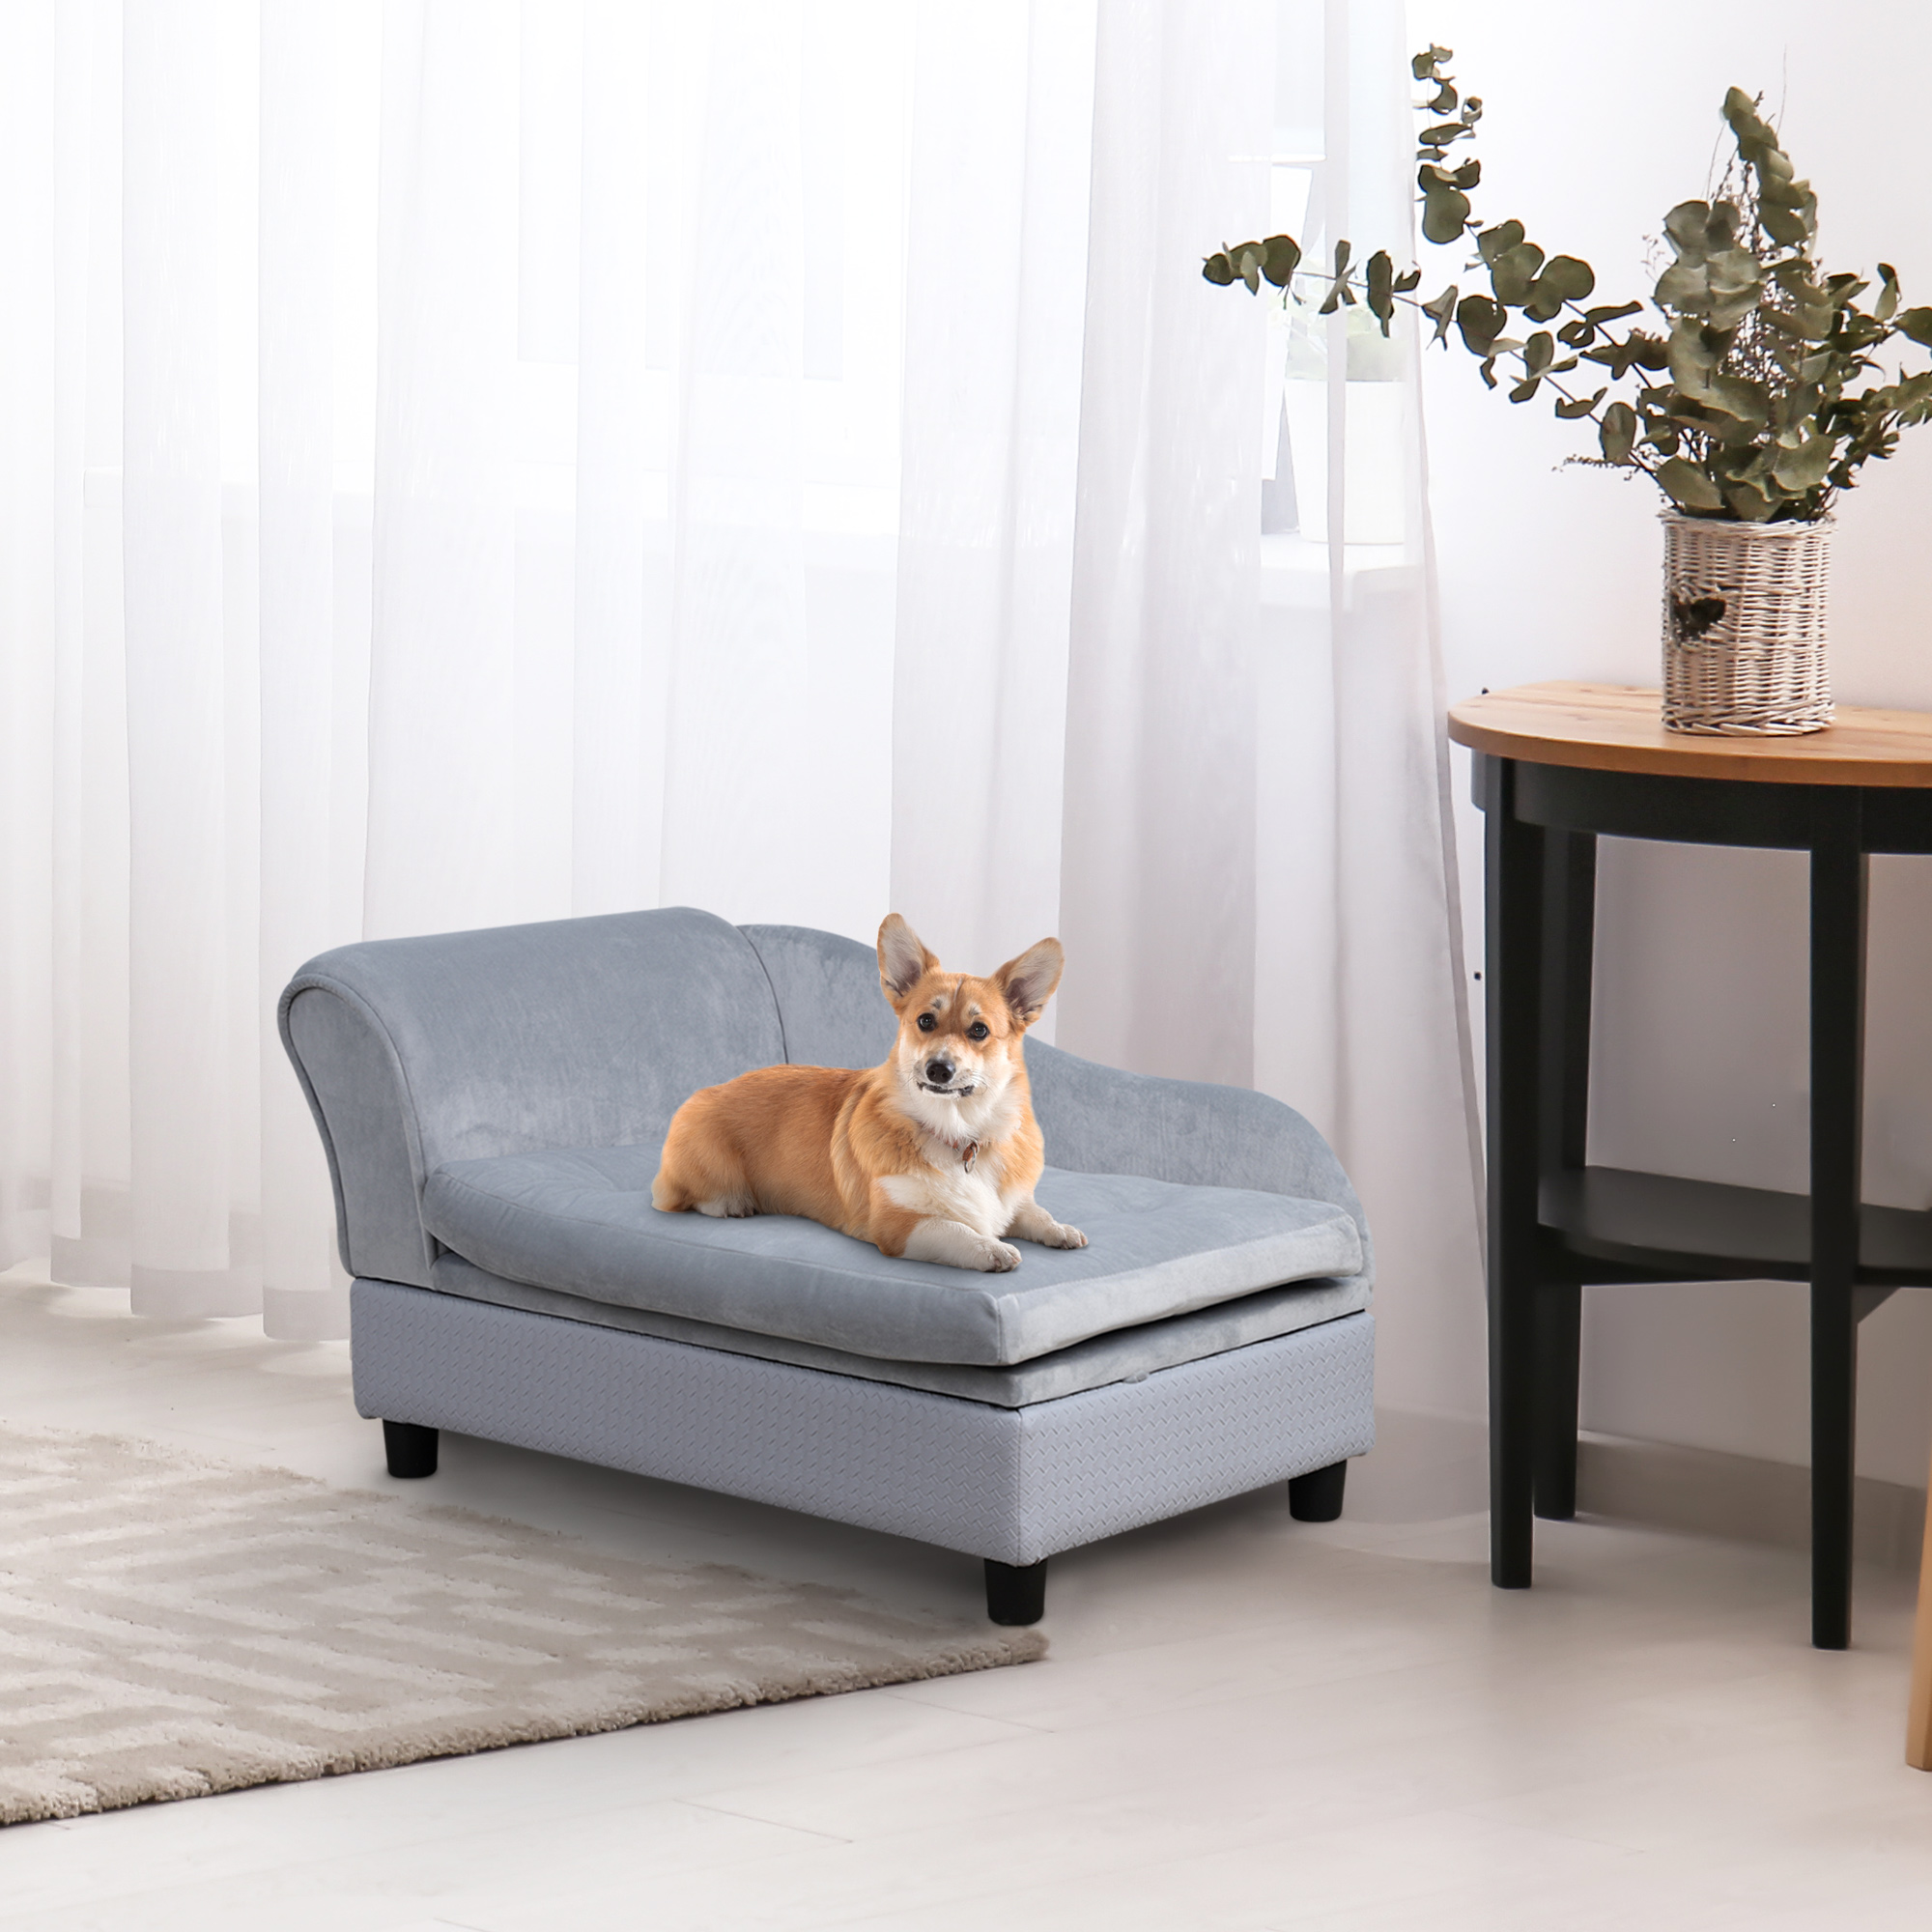 Pawhut Pet Sofa Couch With Storage Function Small Sized Dog Various Cat Sponge Cushioned Bed Lounge W Aosom Canada